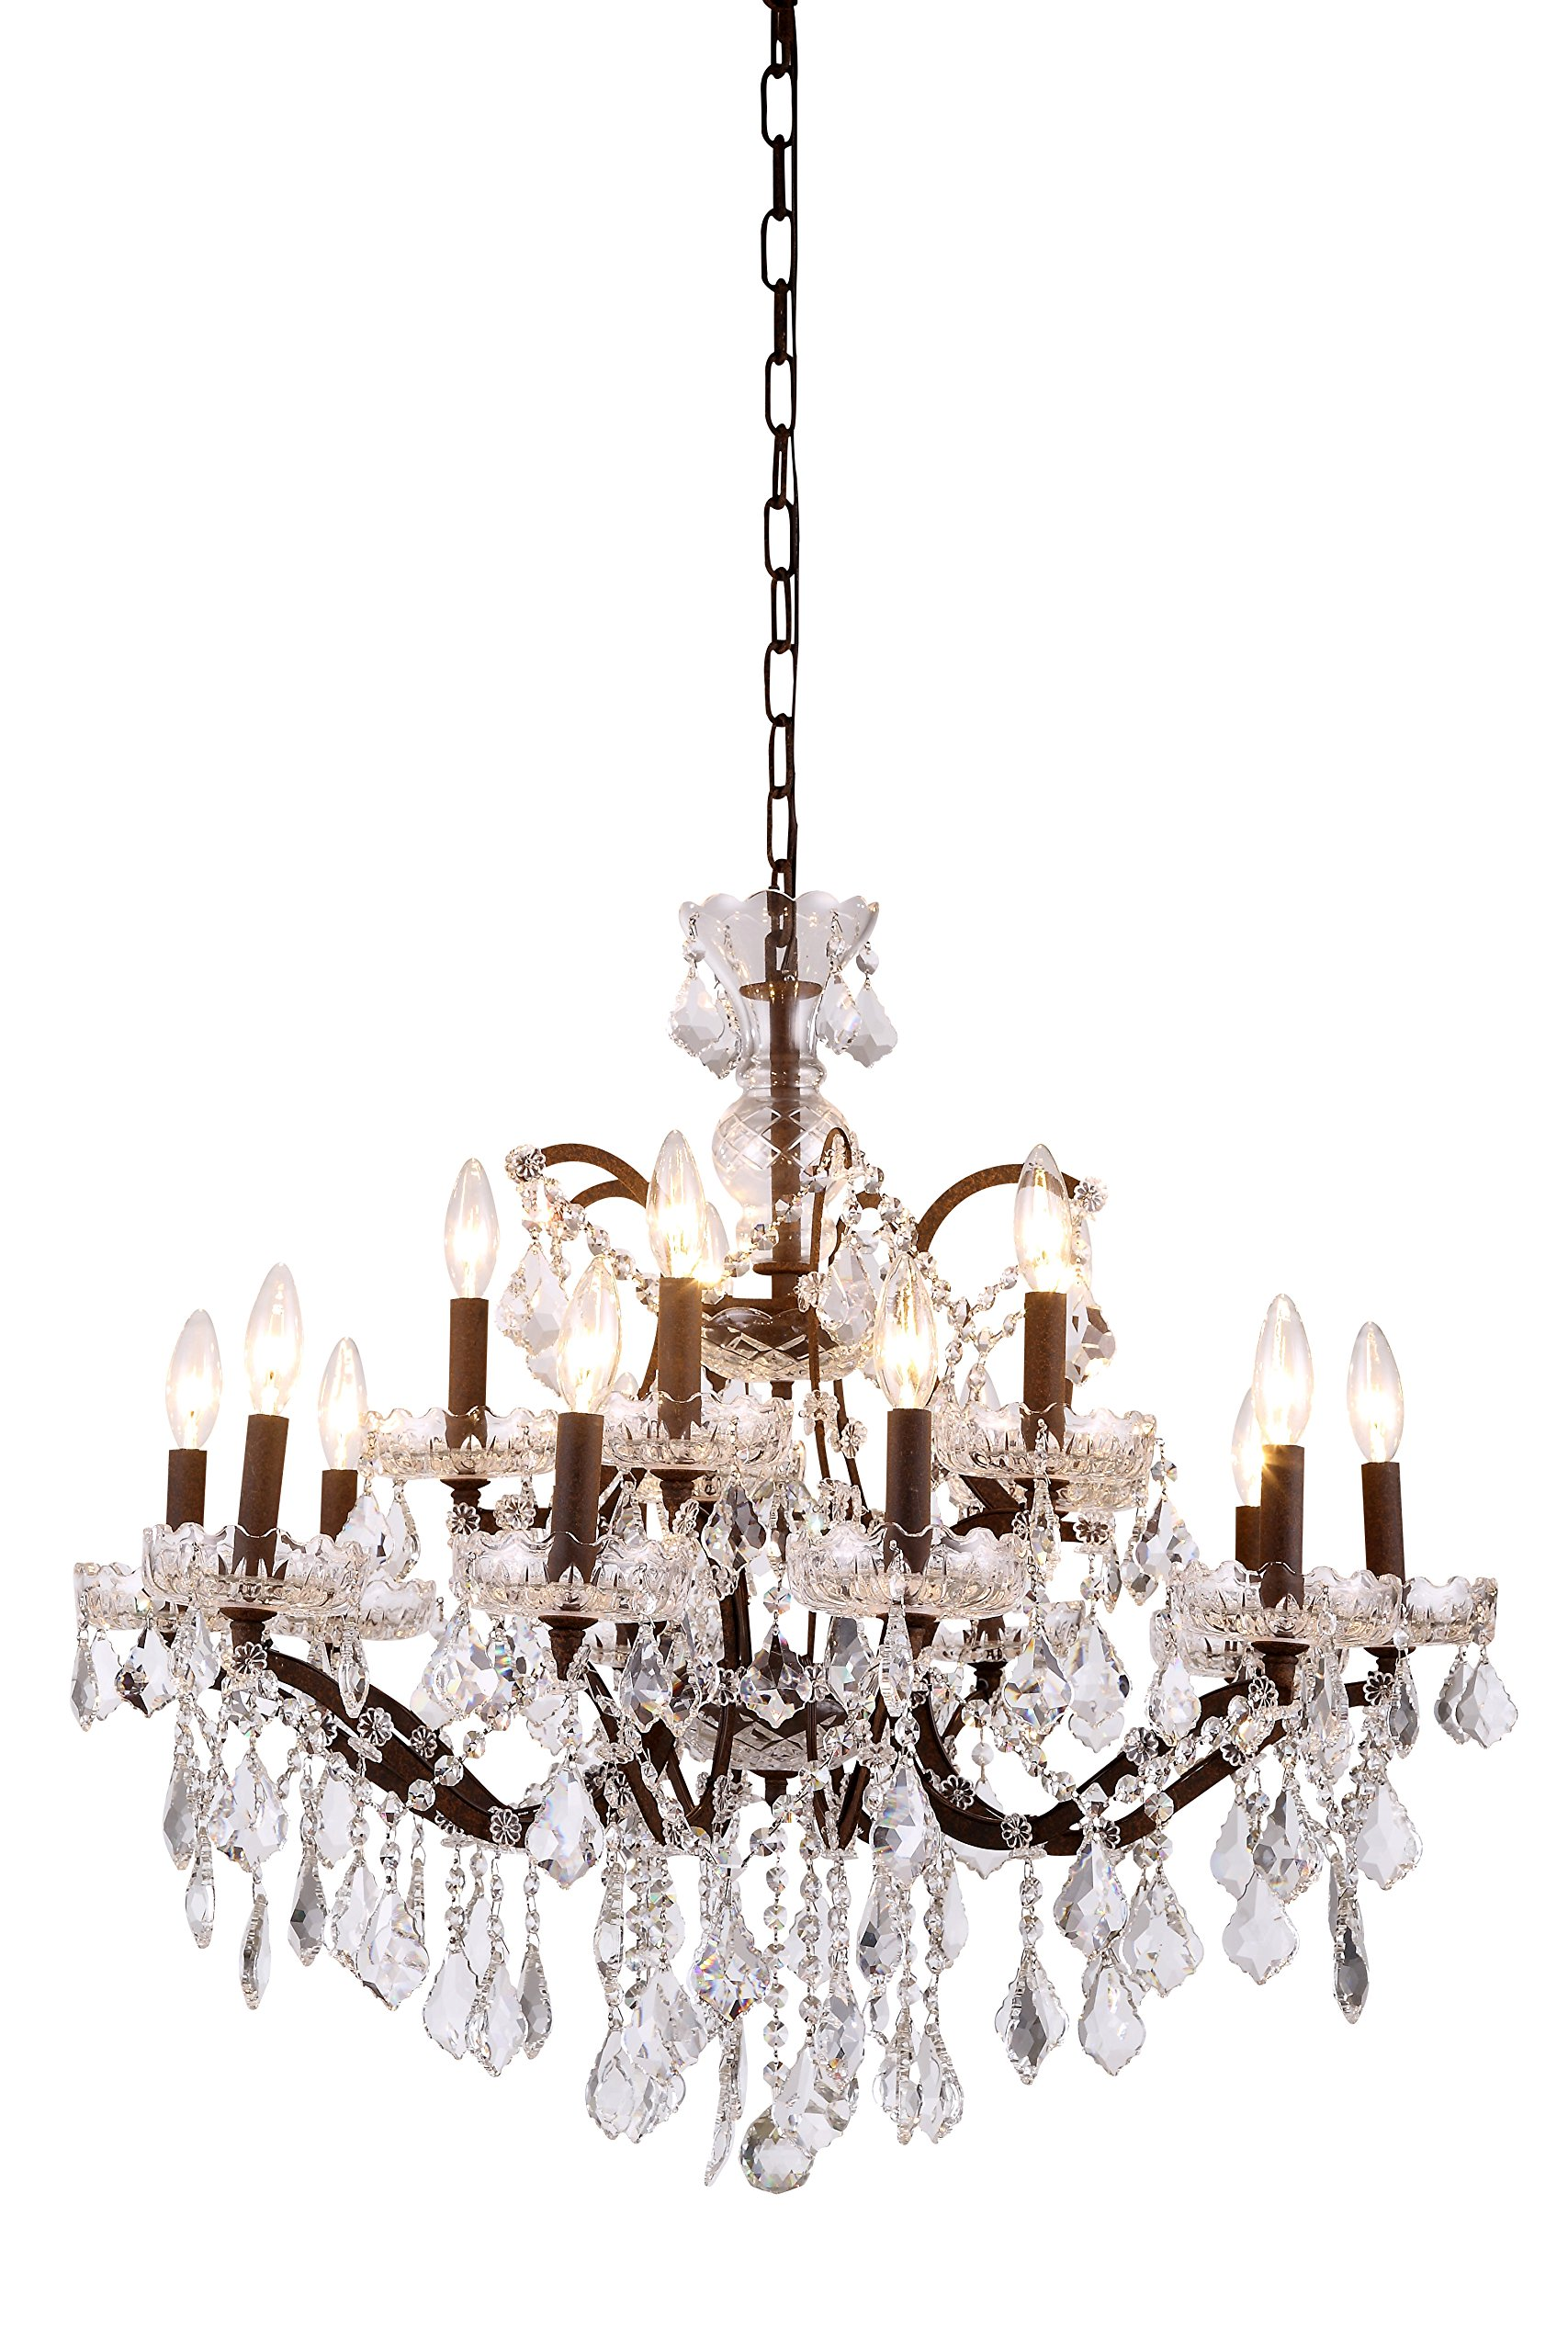 1138 Elena Collection Pendant Lamp D:30In H:28In Lt:15 Rustic Intent Finish Roya by Urban Classic